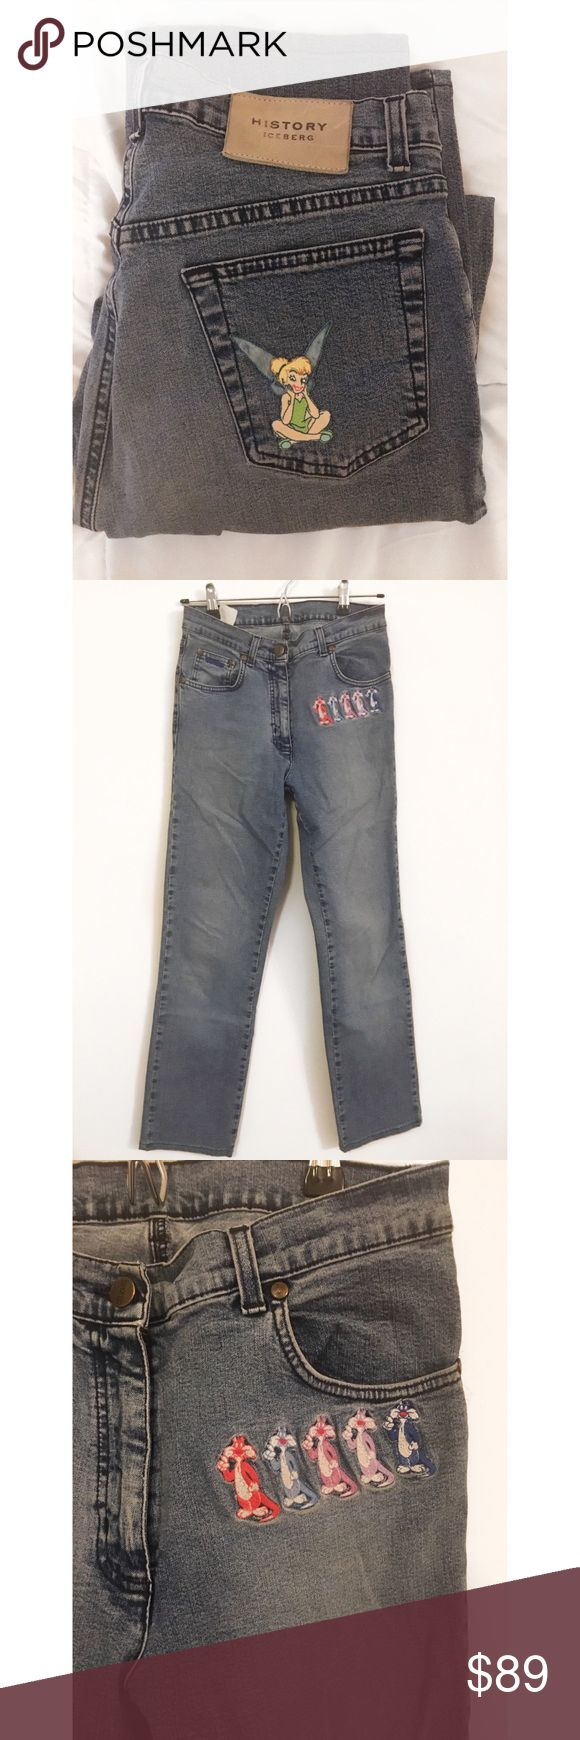 "Vintage History Iceberg jeans size 28 Awesome and funky pair of vintage History iceberg jeans size 28. Sylvester j jr on front and tinker bell on back. Inseam 29"". Rise laying flat 13""straight leg and stretchy. Bottom leg width is 71/2"". Like new history iceberg Jeans Straight Leg"